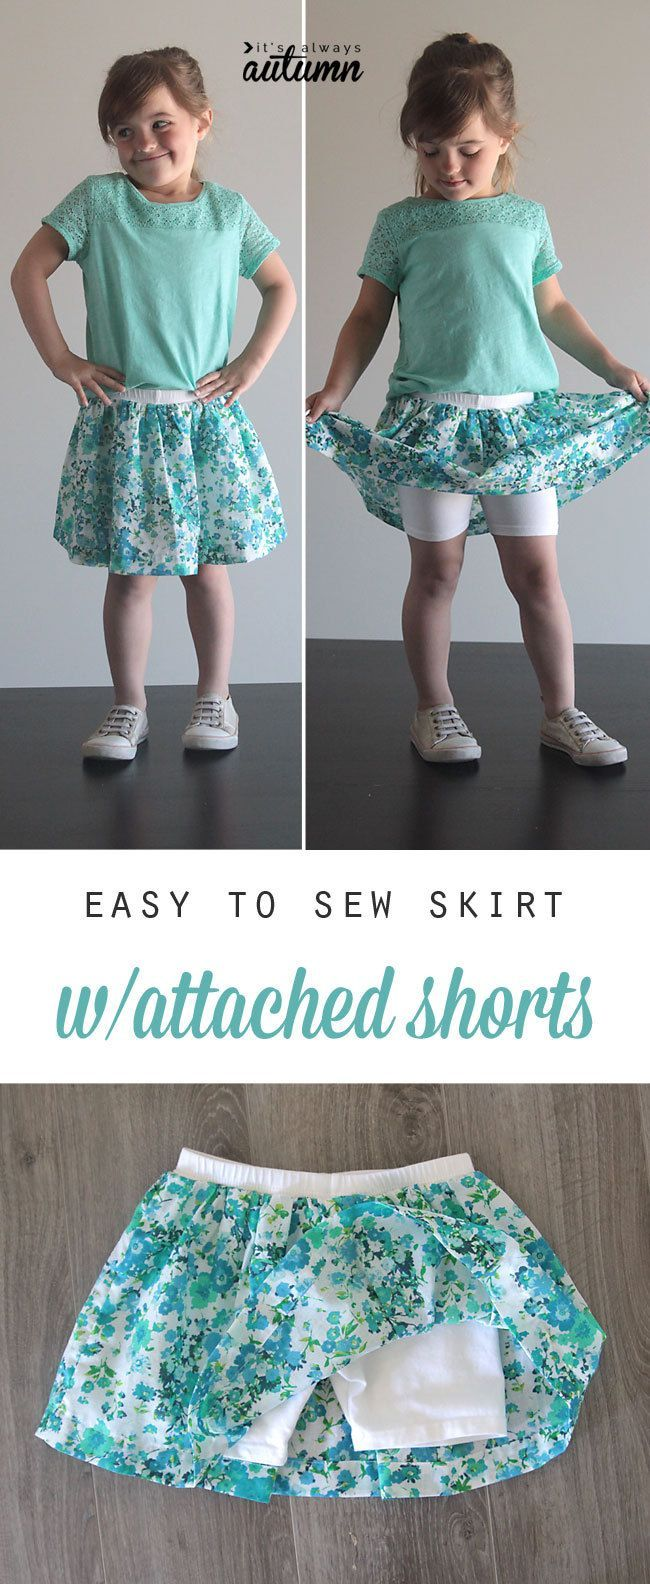 how-to-sew-skirt-with-shorts-little-girl-easy-sewing-tutorial-1